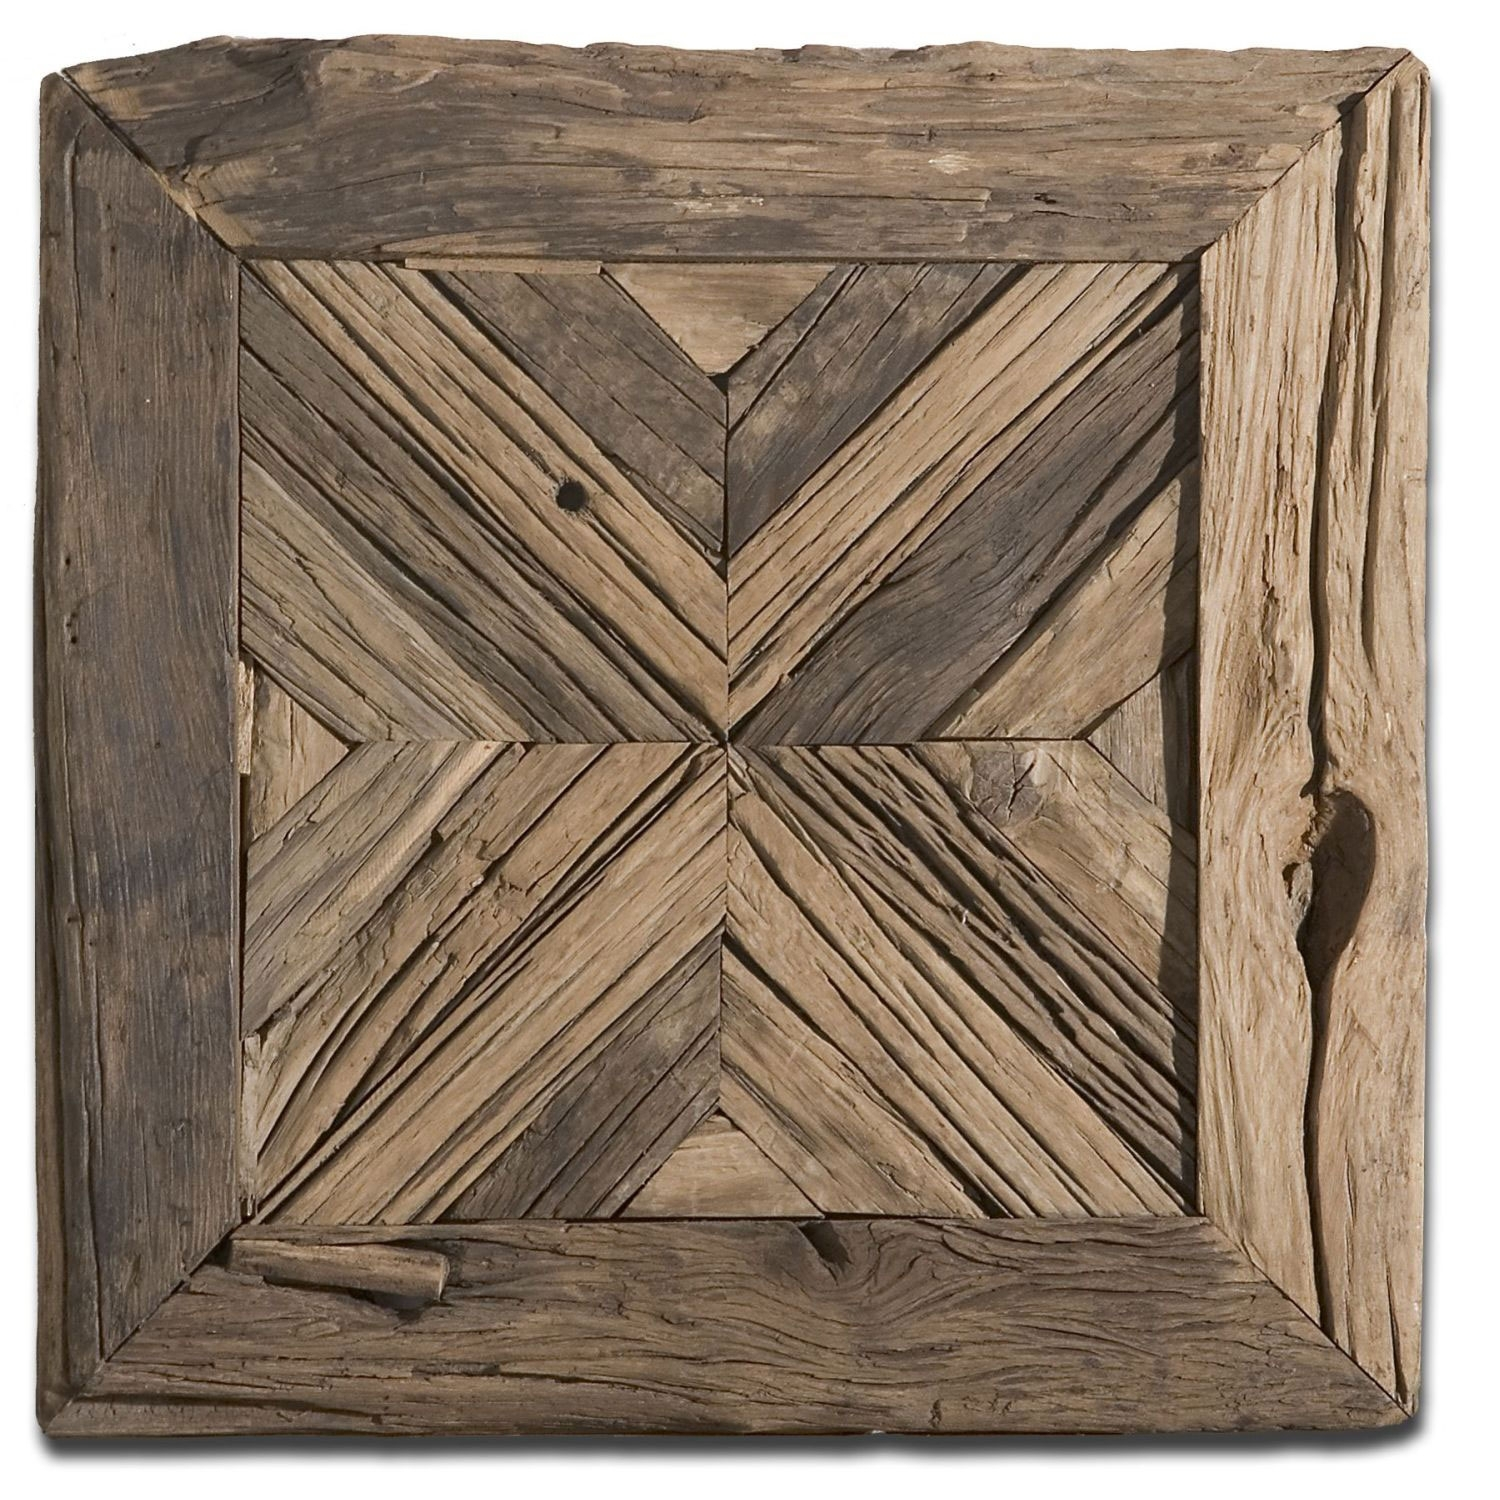 Uttermost Rennick Rustic Wood Wall Art 04014 | Bellacor Regarding Best And Newest Wood Medallion Wall Art (View 15 of 20)